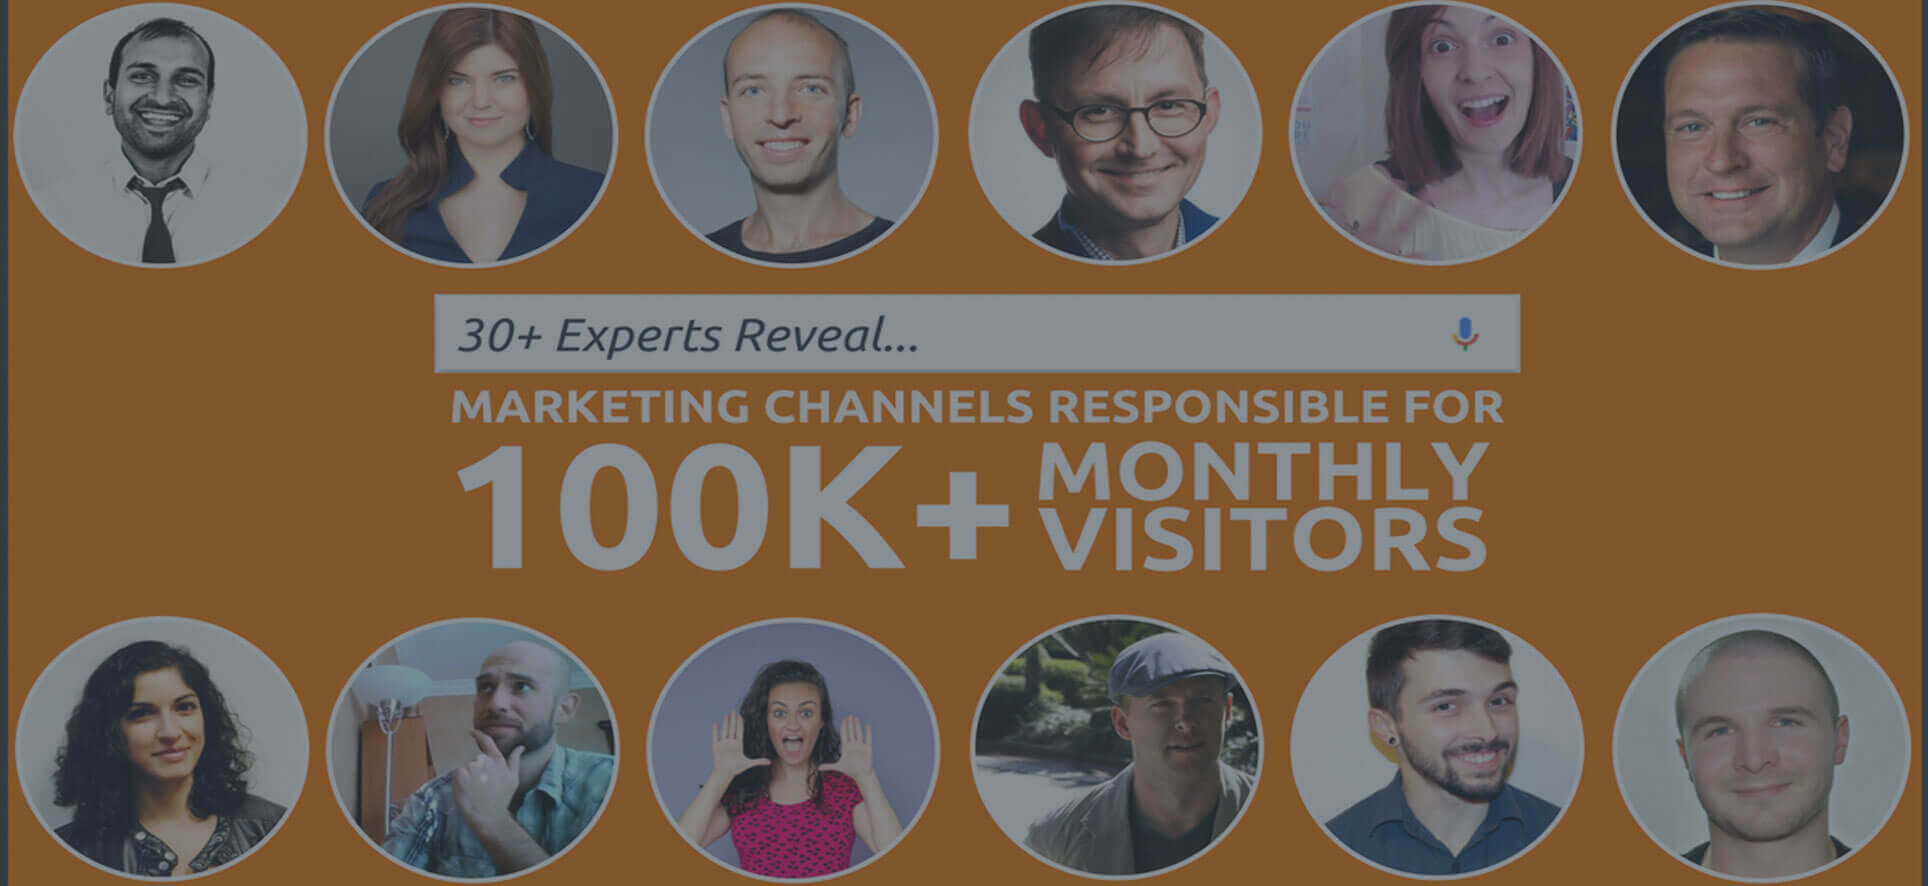 30+ Experts Reveal Best Marketing Channels to Drive Massive Traffic